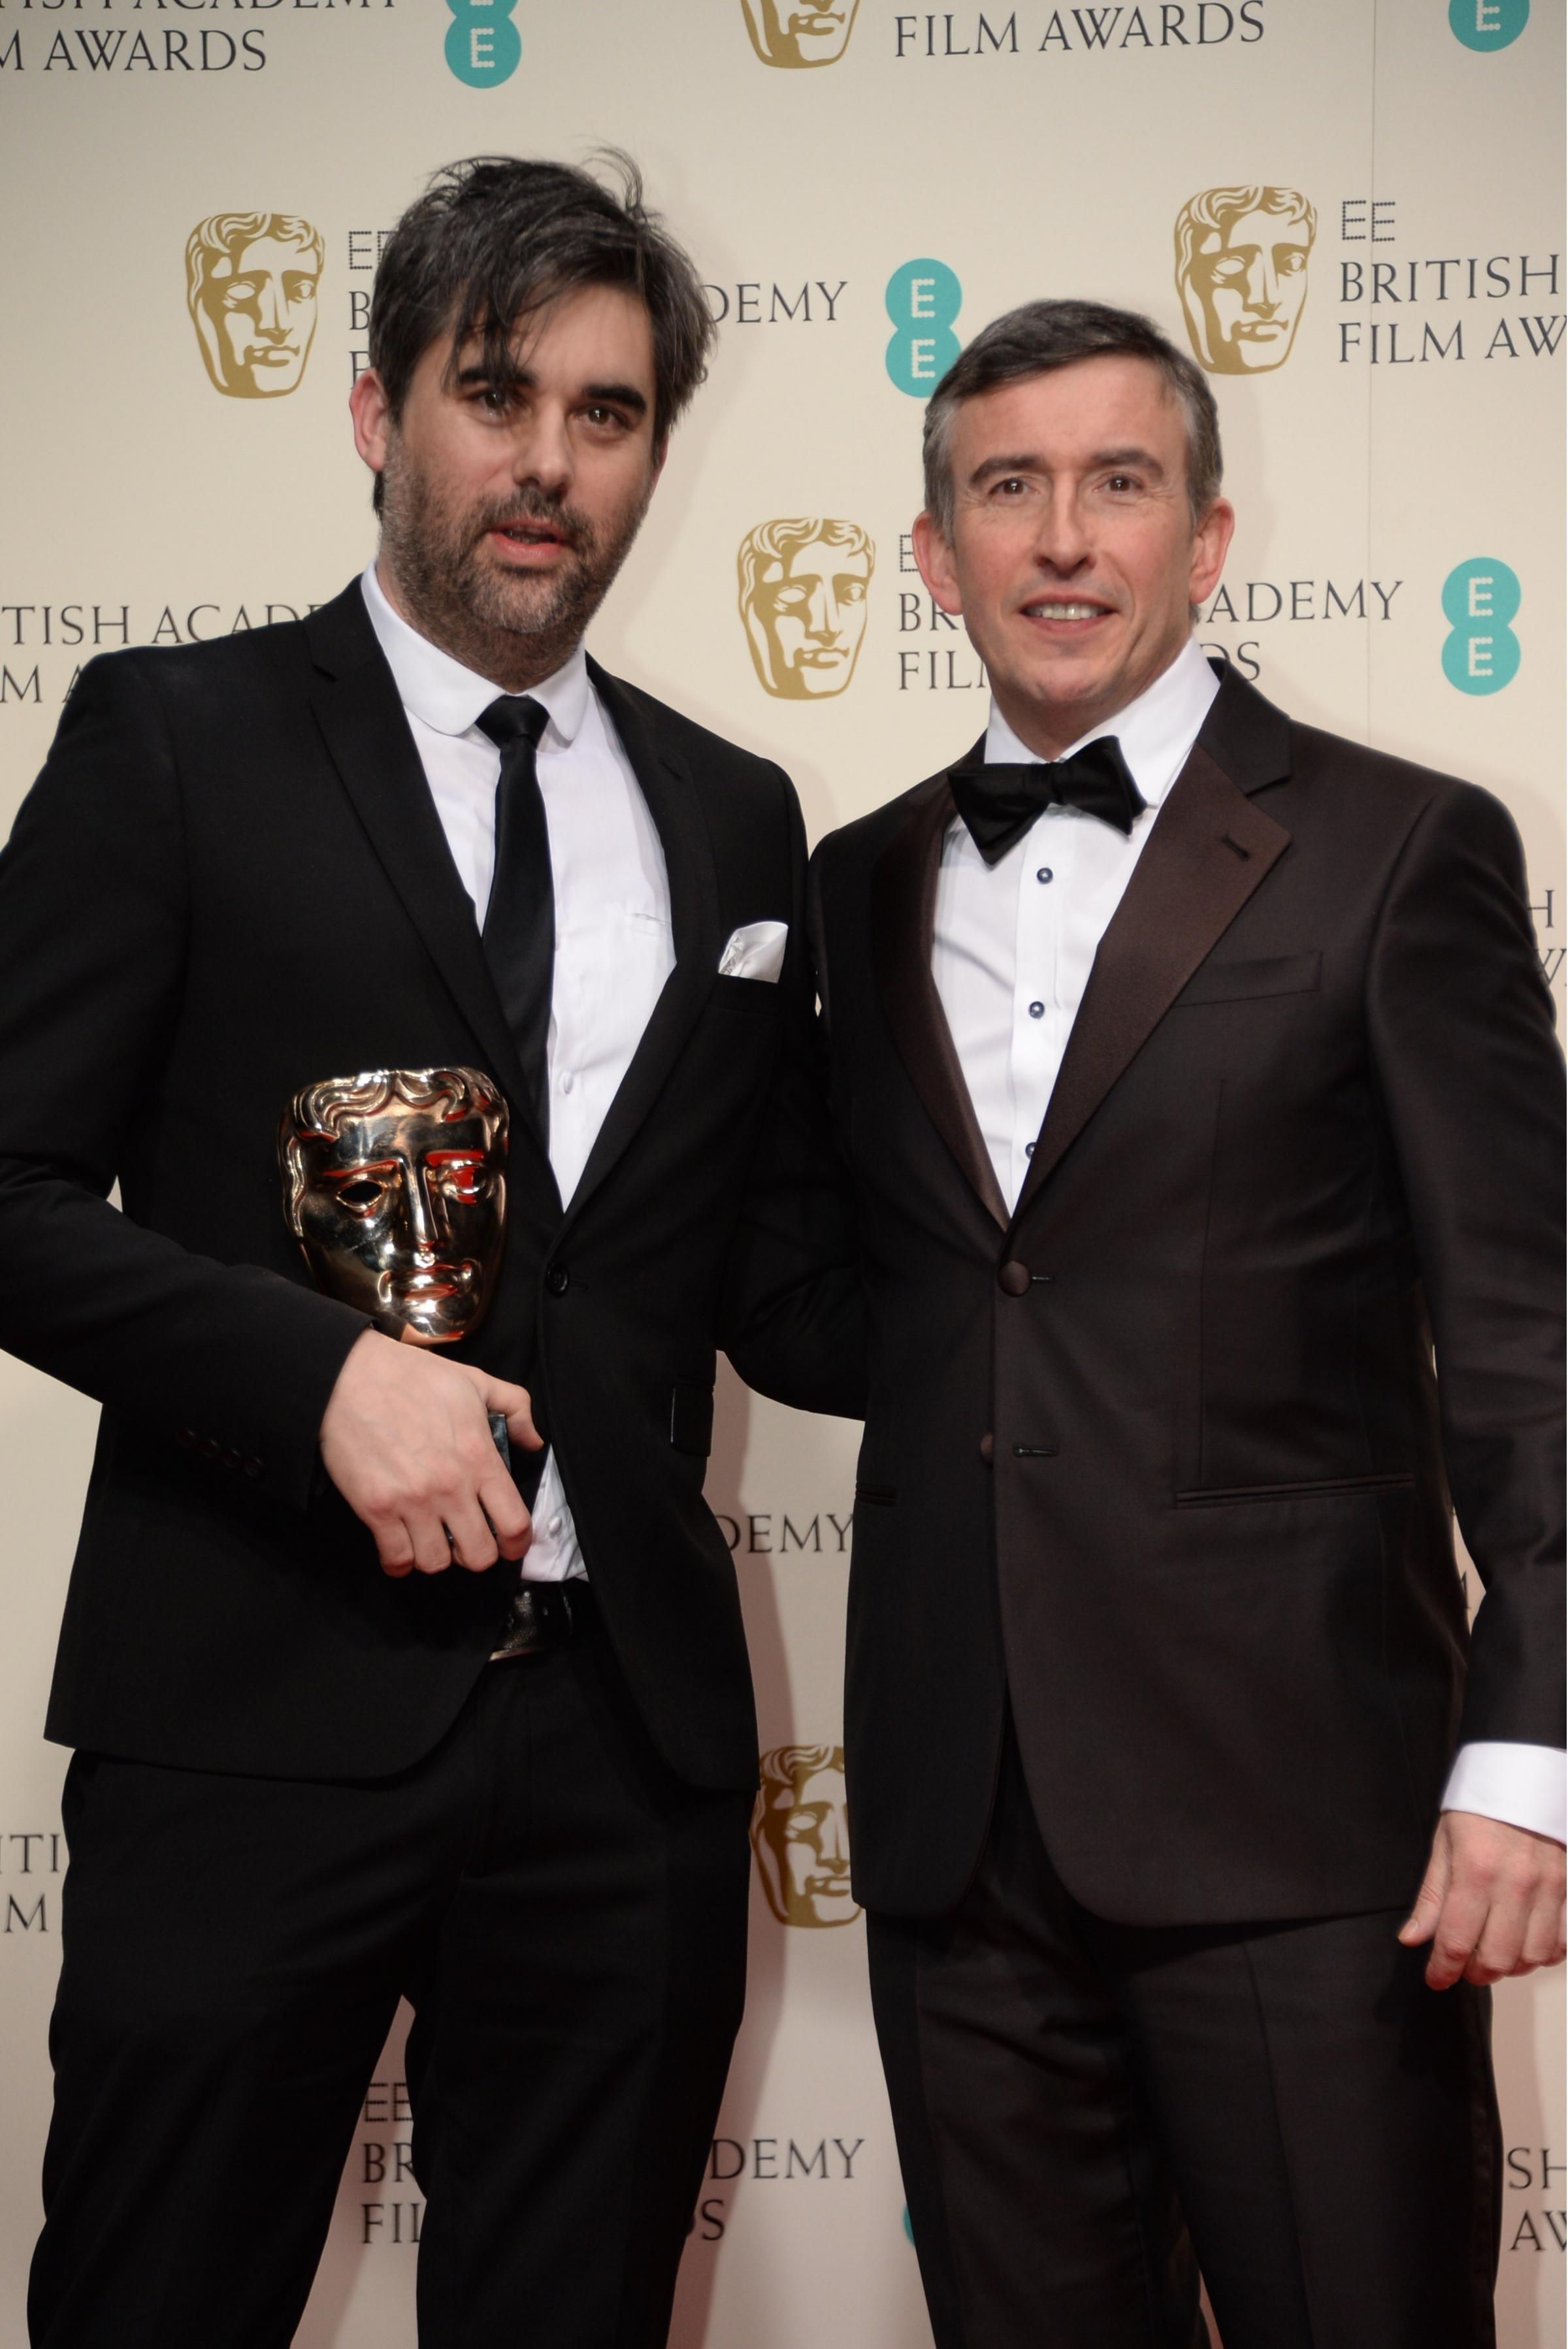 OUTSTANDING DEBUT: St Davids film maker Kieran Evans received his BAFTA from actor Steve Coogan PICTURE: Richard Young/REX (4039203)